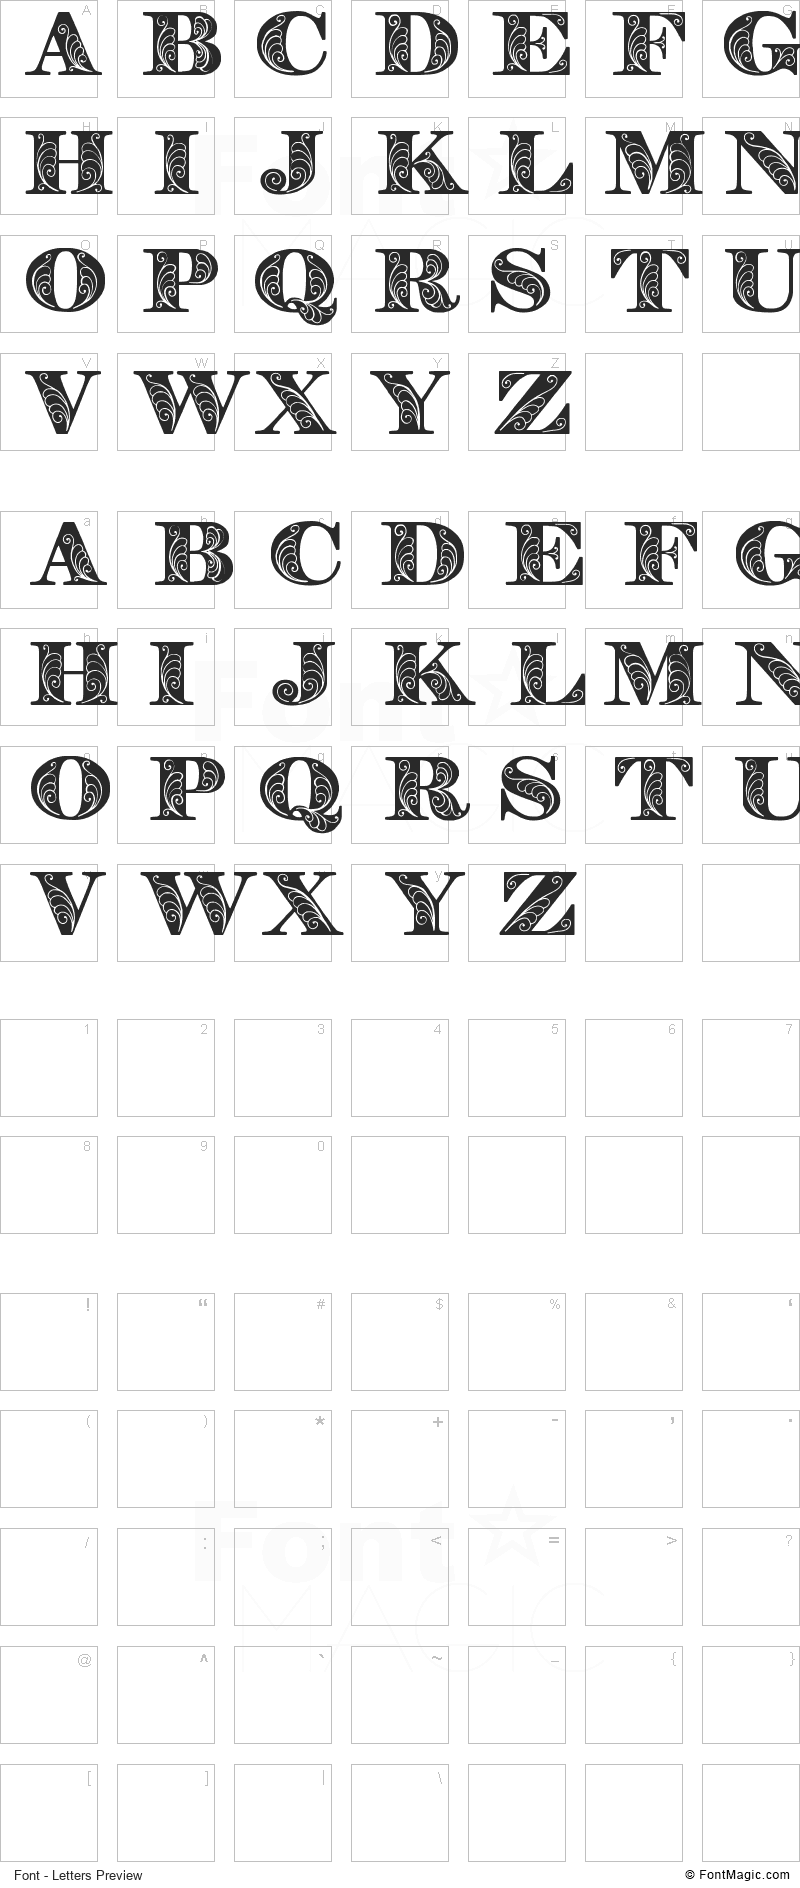 Zenone Font - All Latters Preview Chart